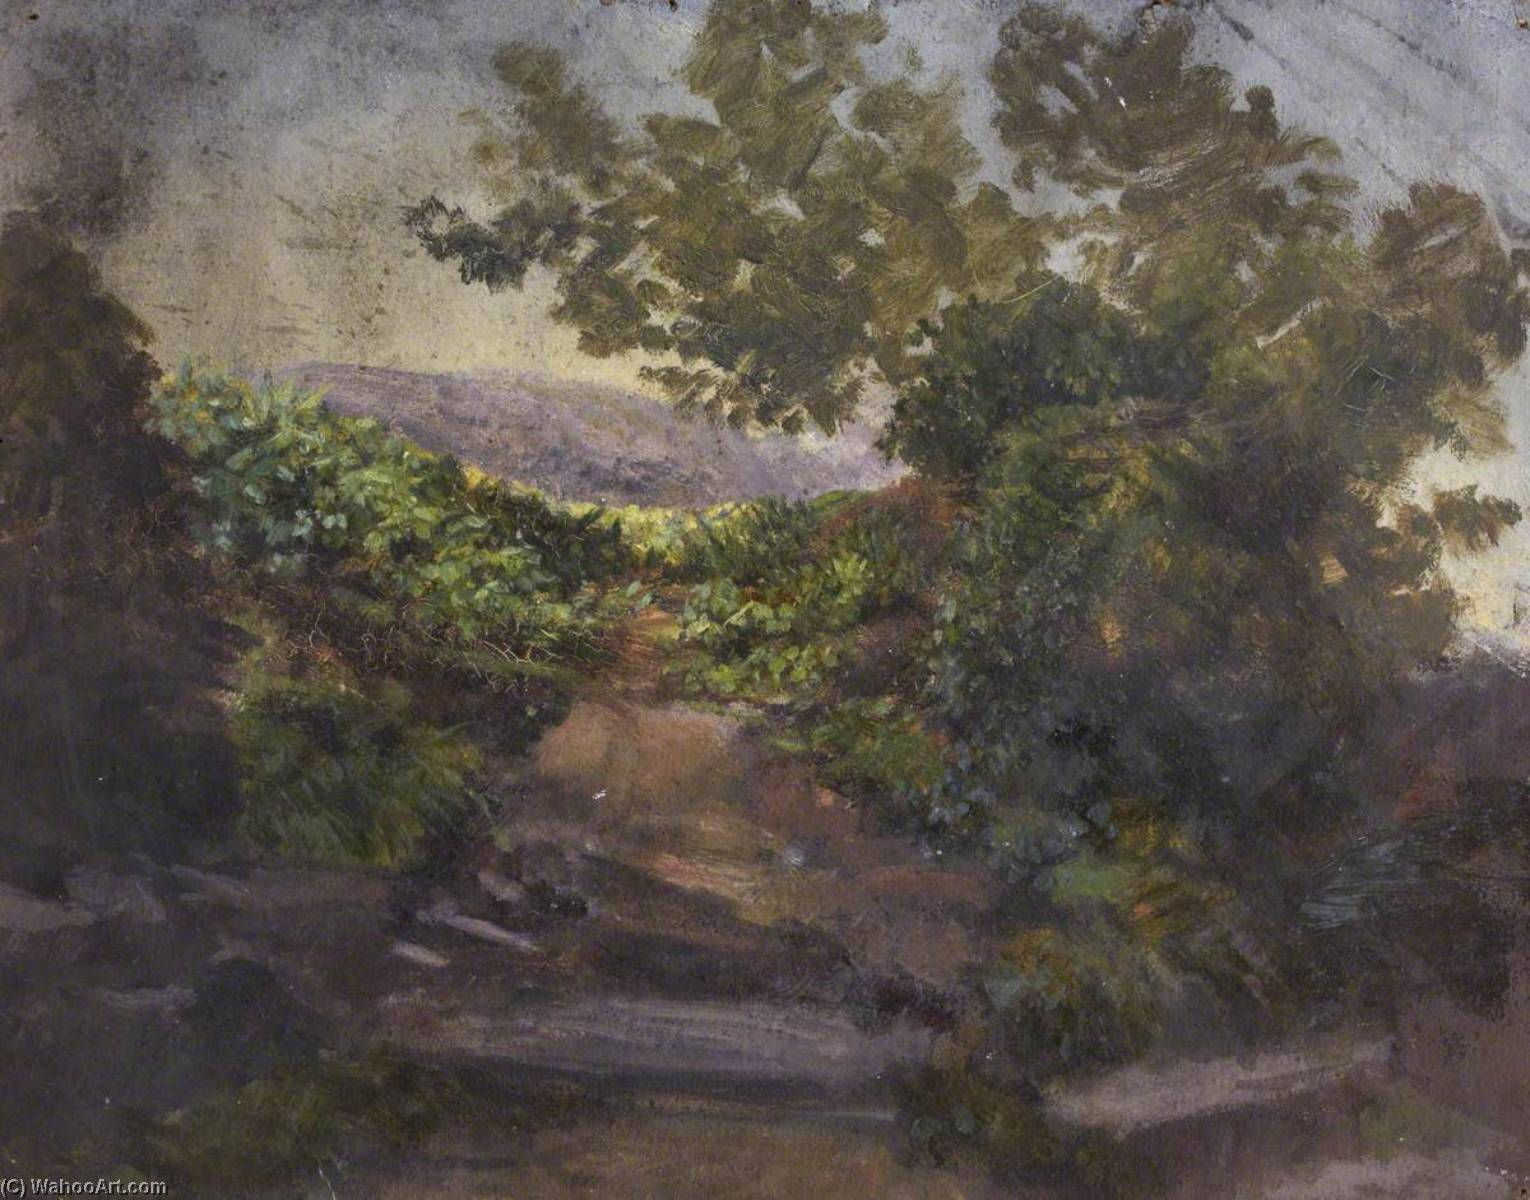 Landscape with Bushes and Trees, Oil by Thomas Stuart Smith